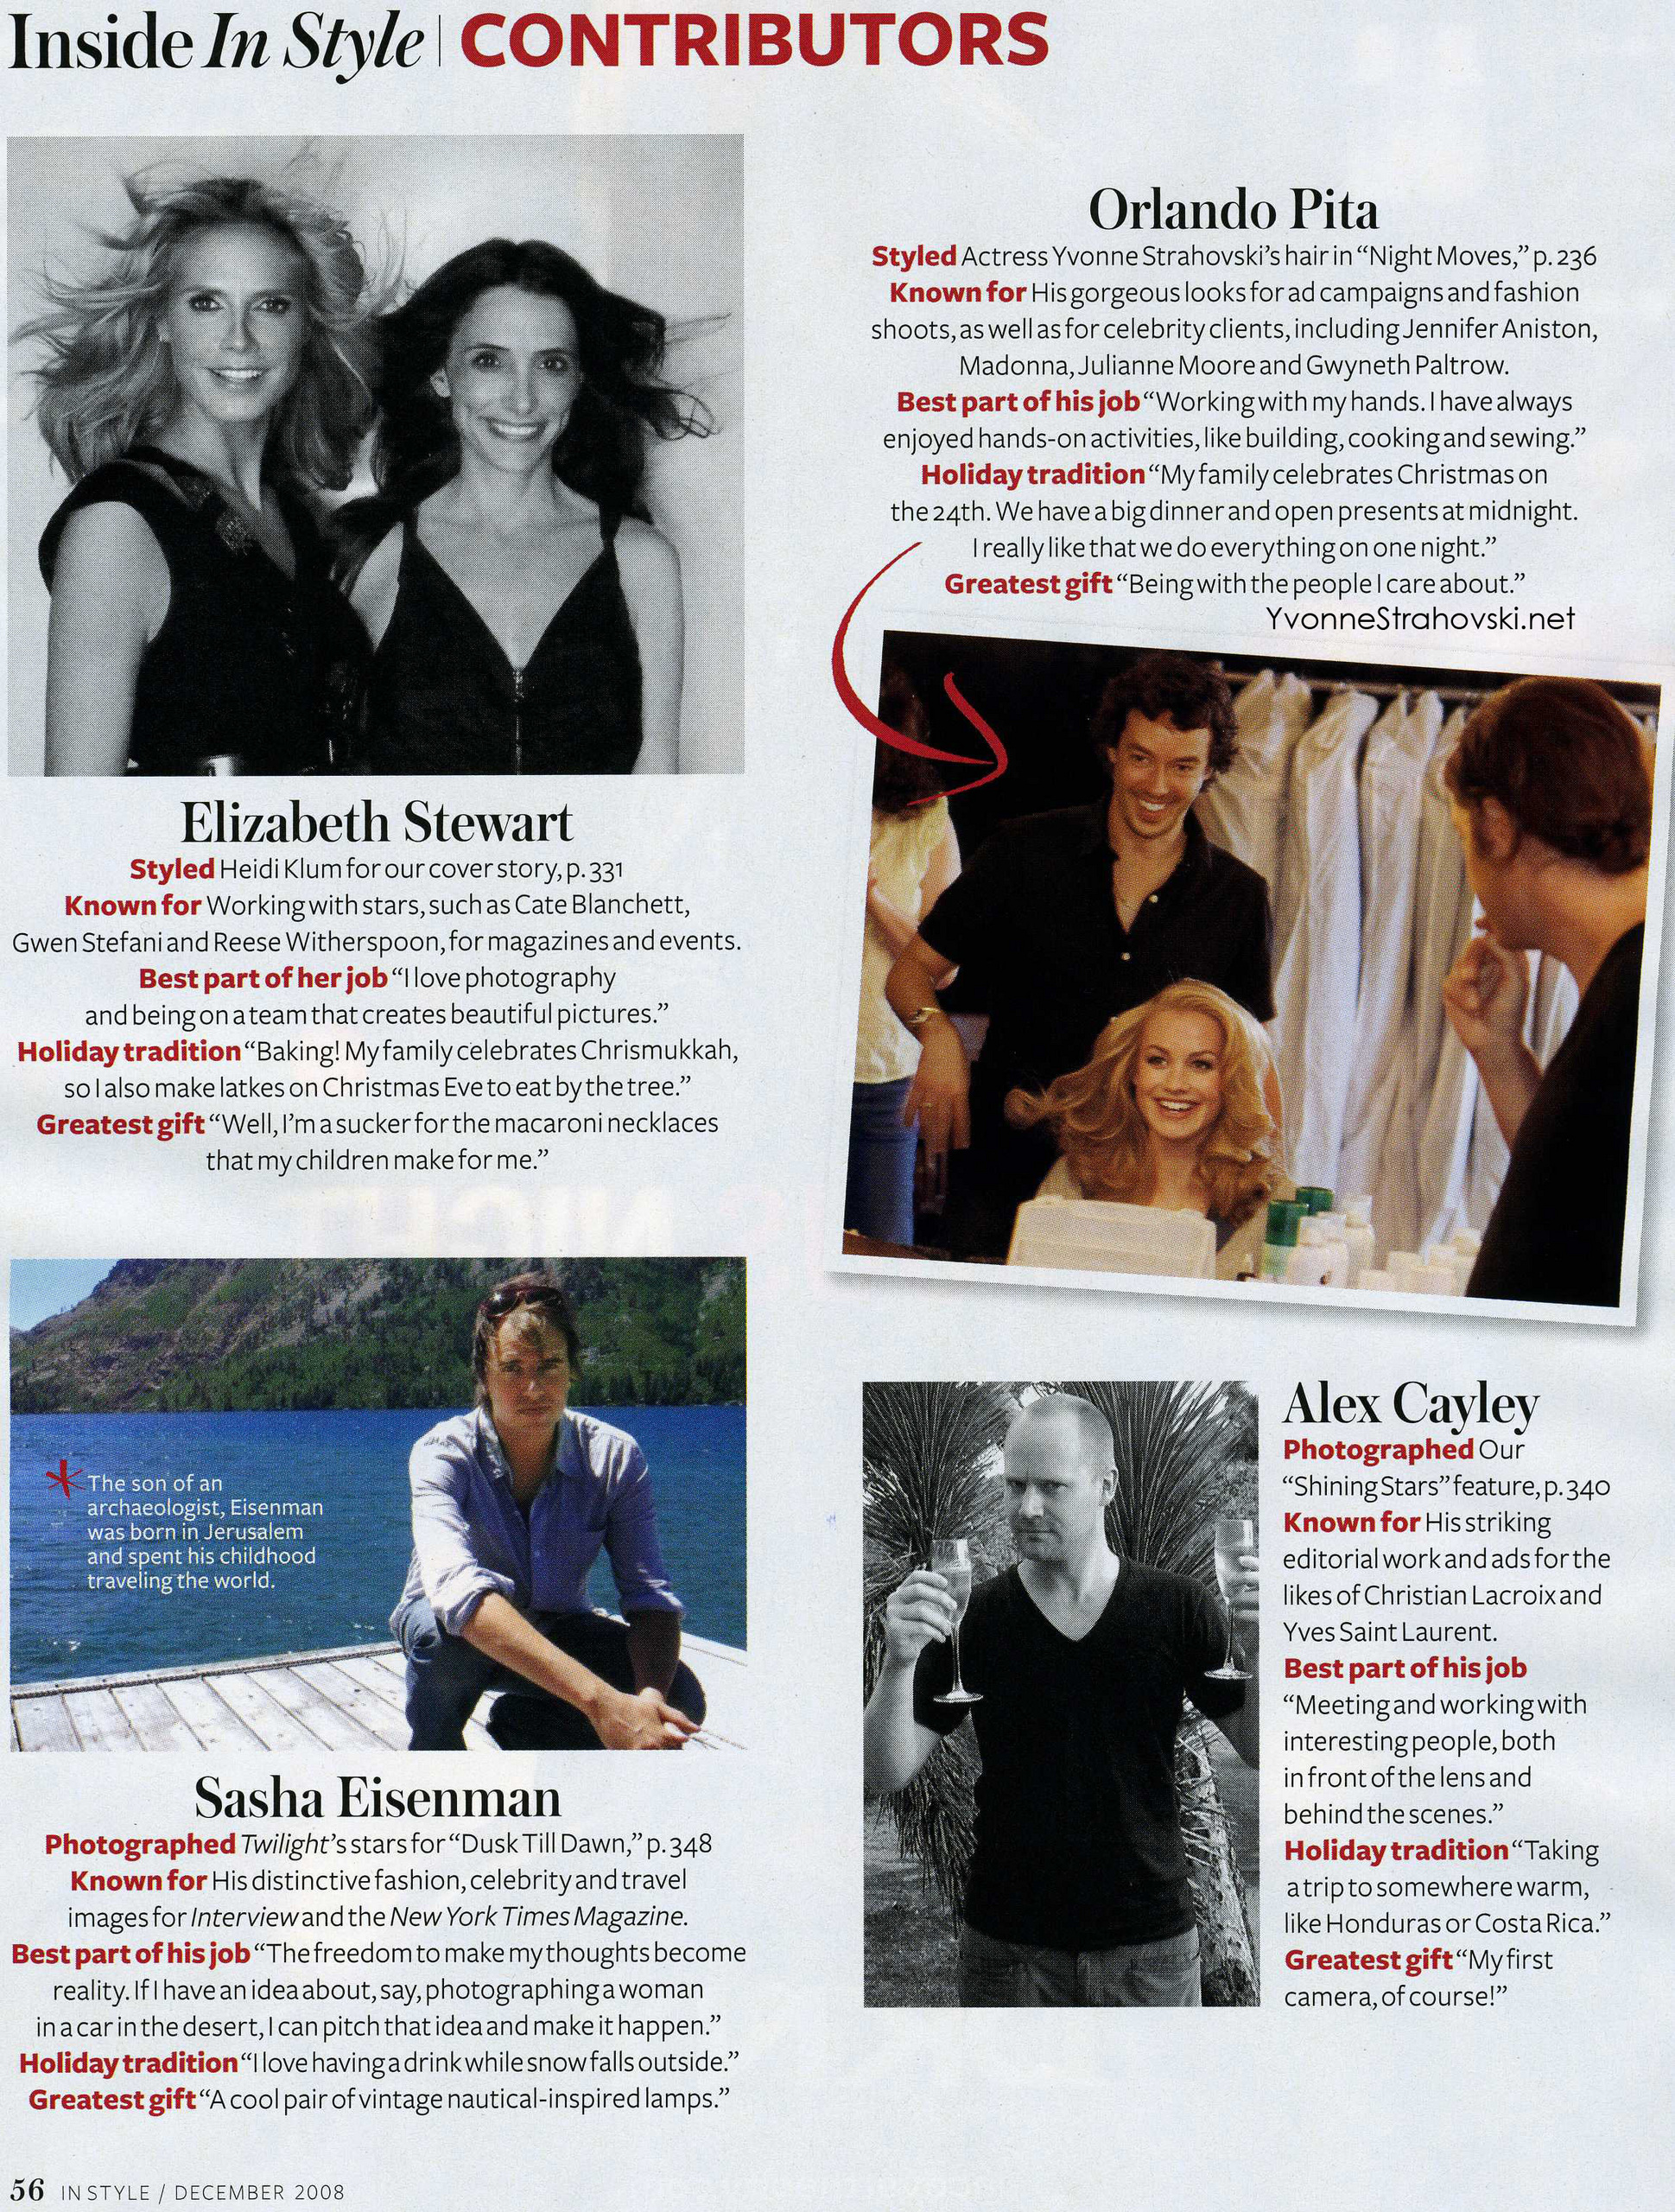 Instyle [December 2008]